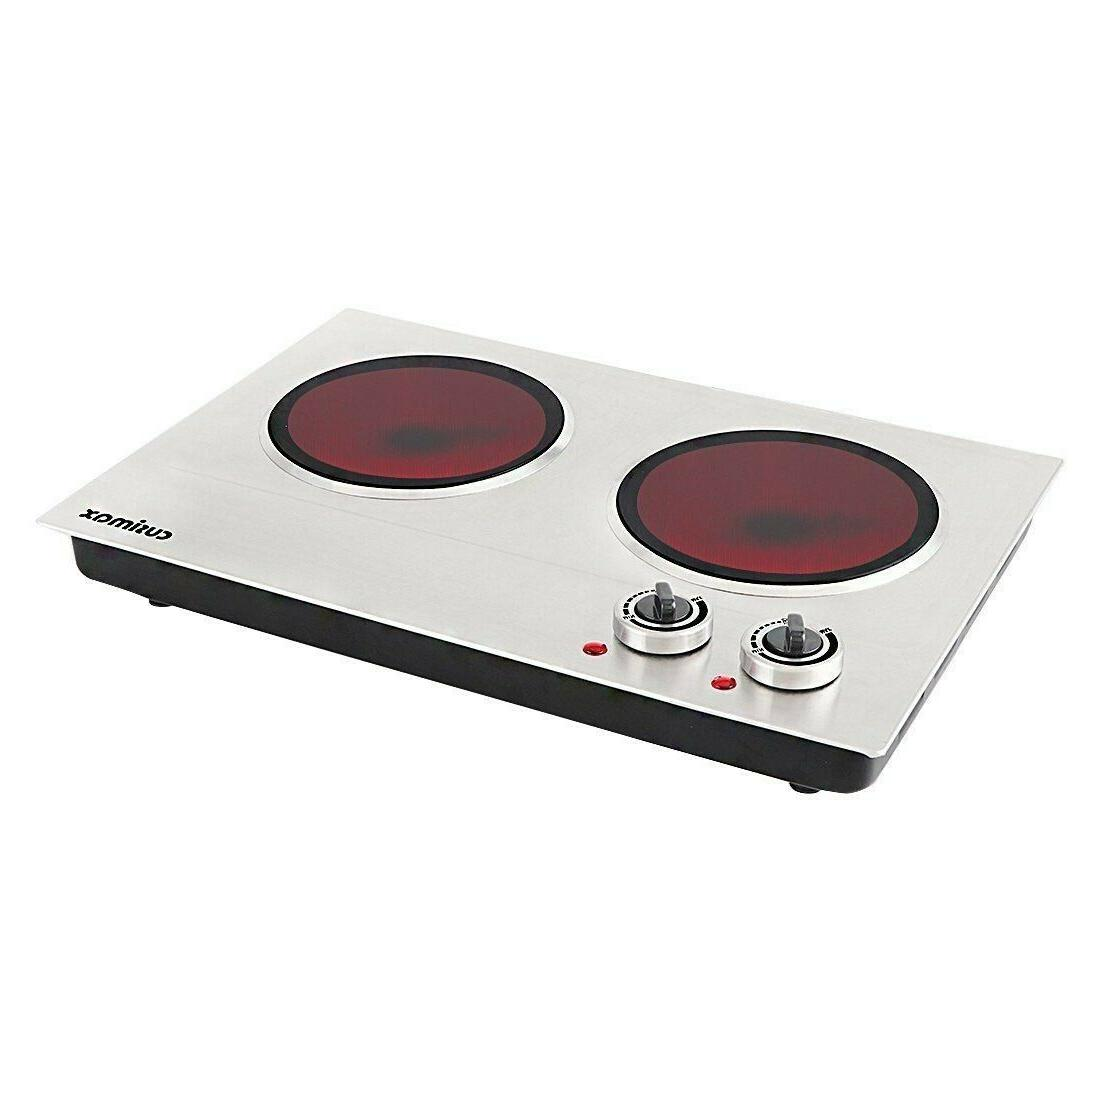 Cusimax Hot Plate, 1800W Electric Double Iron Cooktop